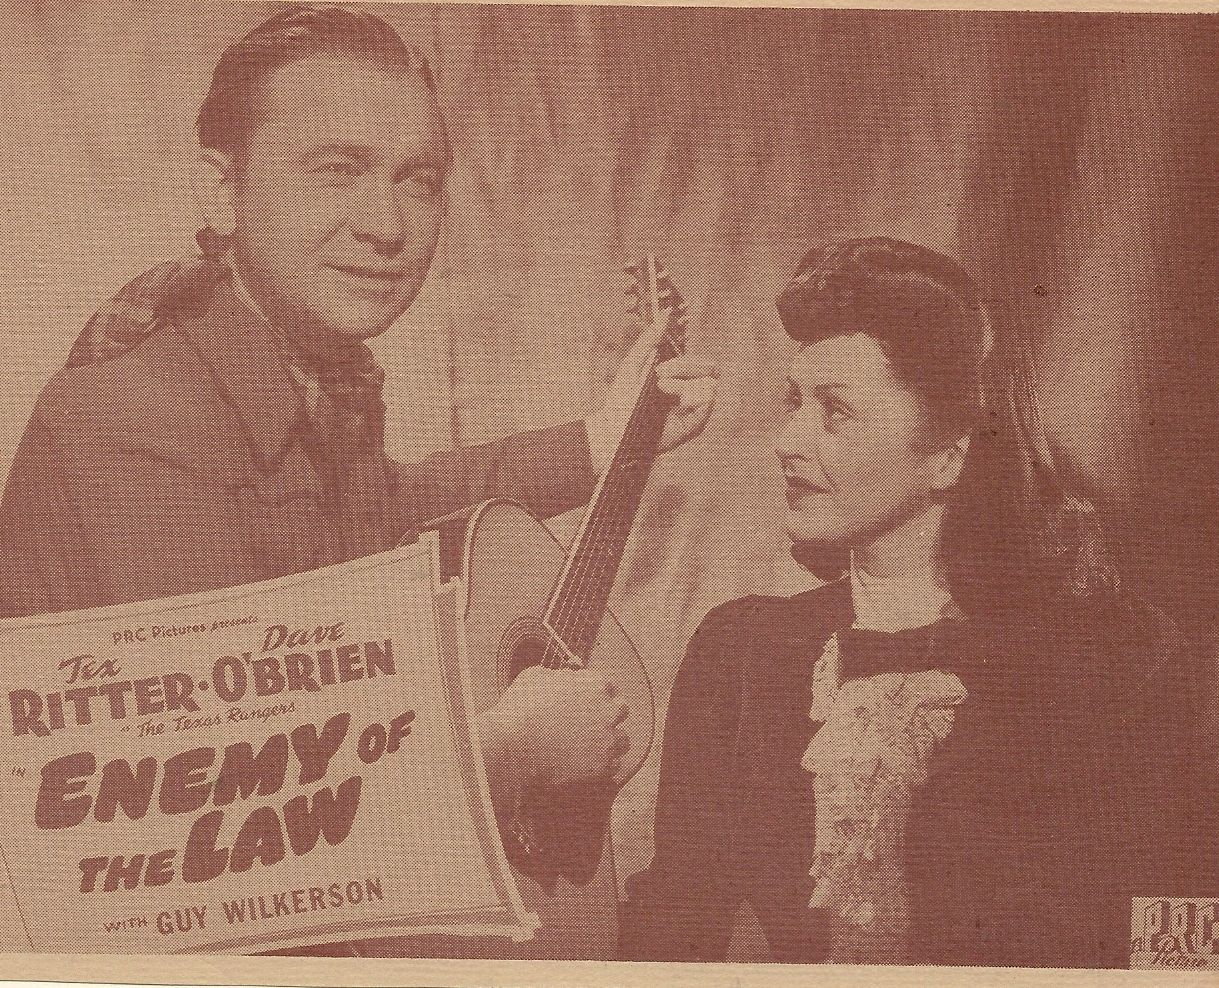 Kay Hughes and Tex Ritter in Enemy of the Law (1945)